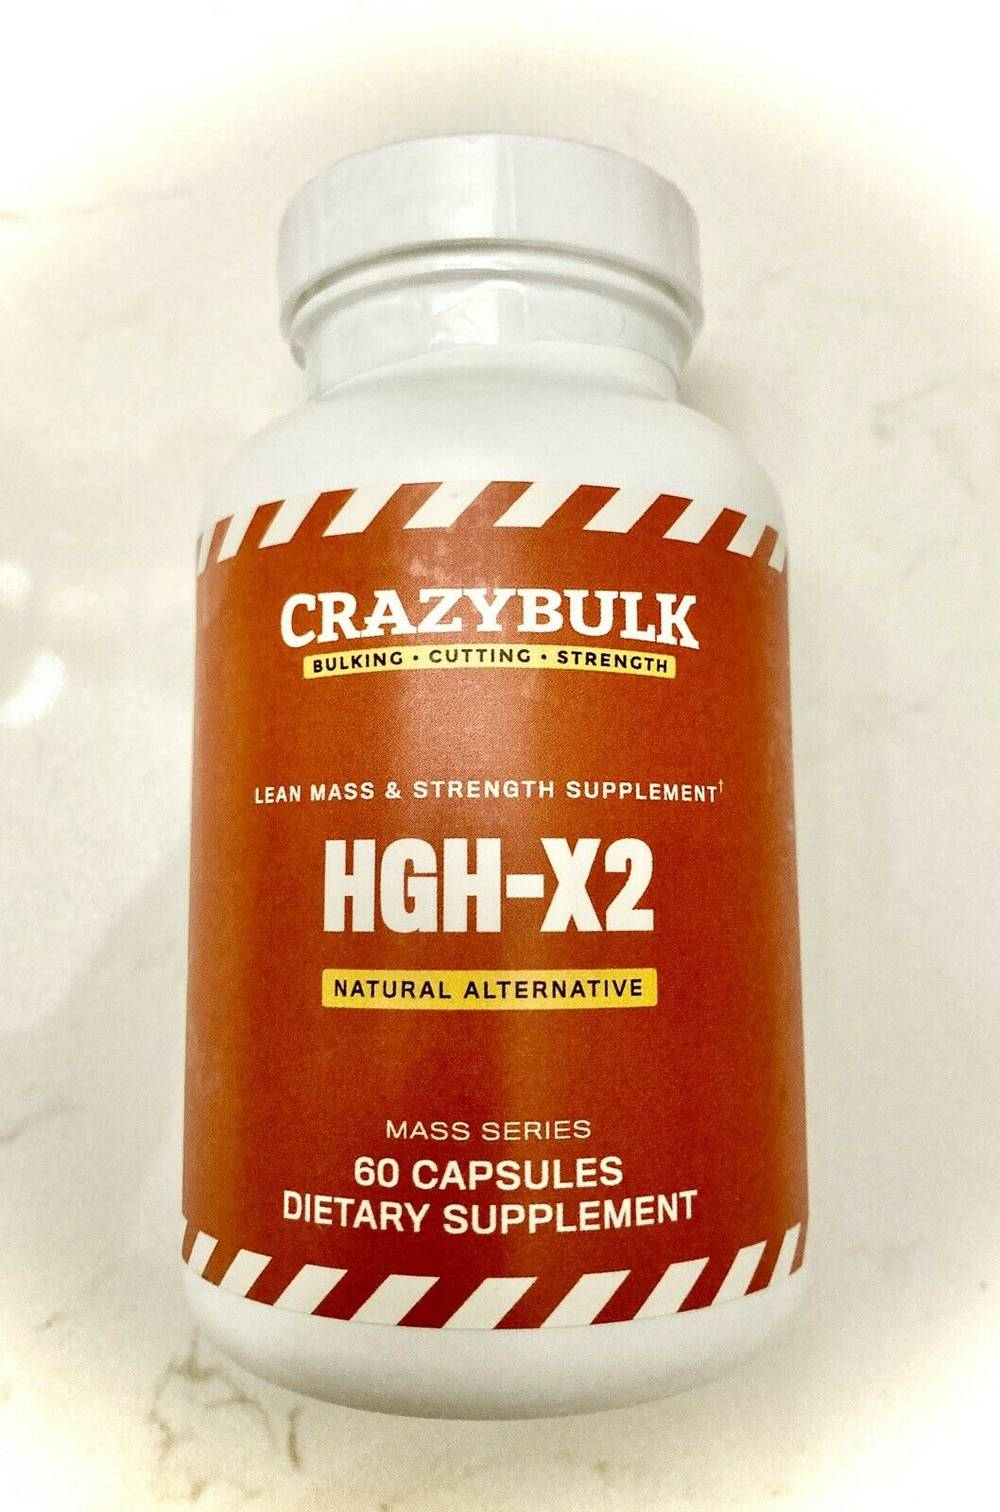 hgh-x2 bottle